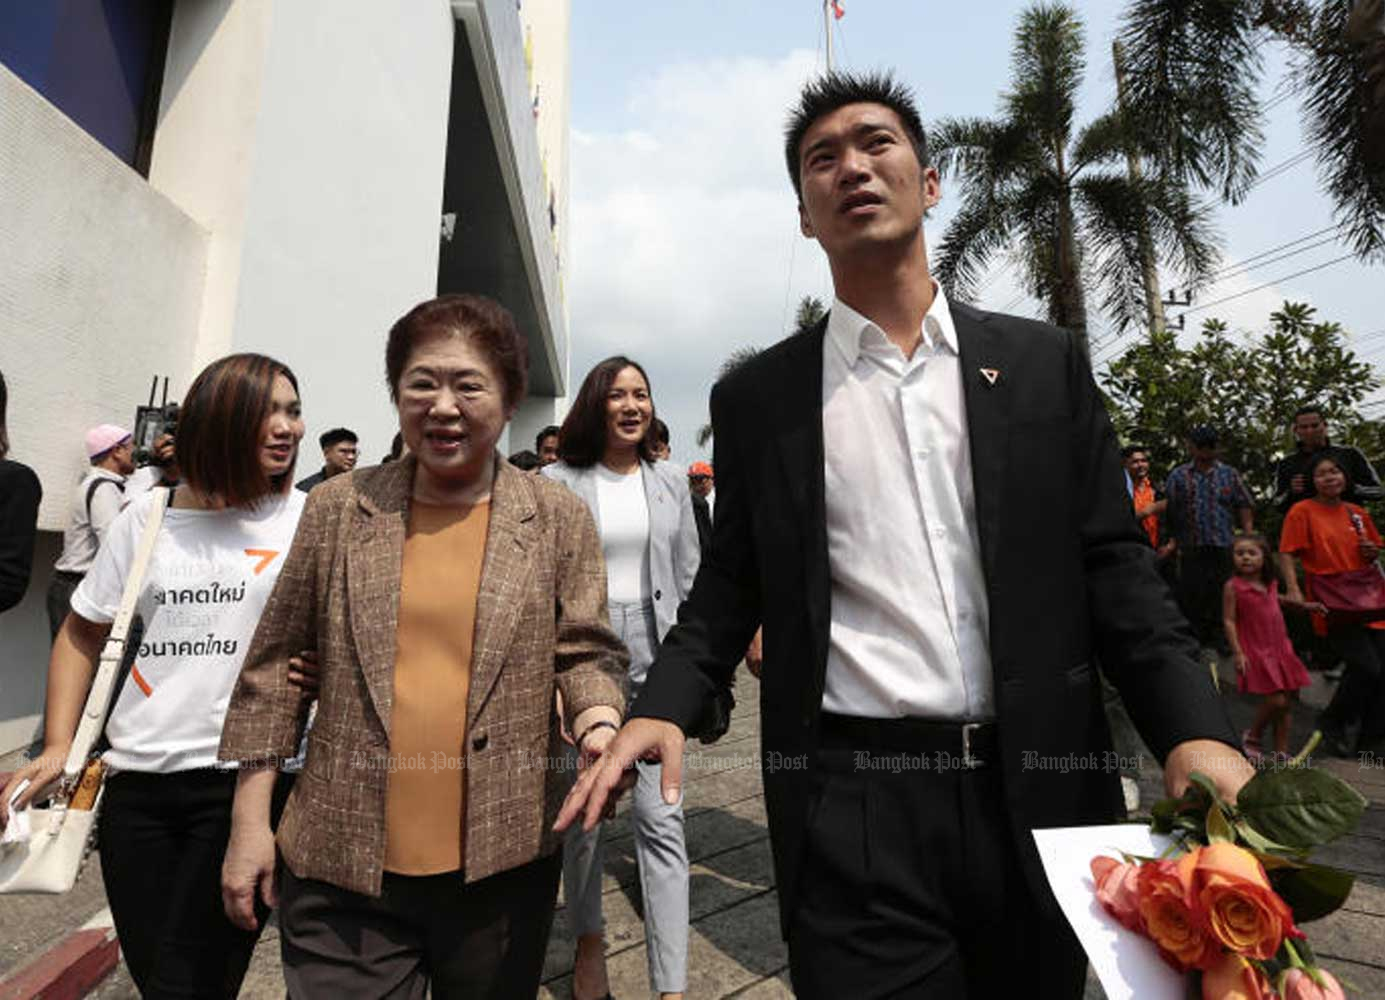 Future Forward Party leader Thanathorn Juangroongruangkit, right, is escorted by his mother Somporn at the Office of the Attorney-General in Bangkok early last year. (Bangkok Post file photo)